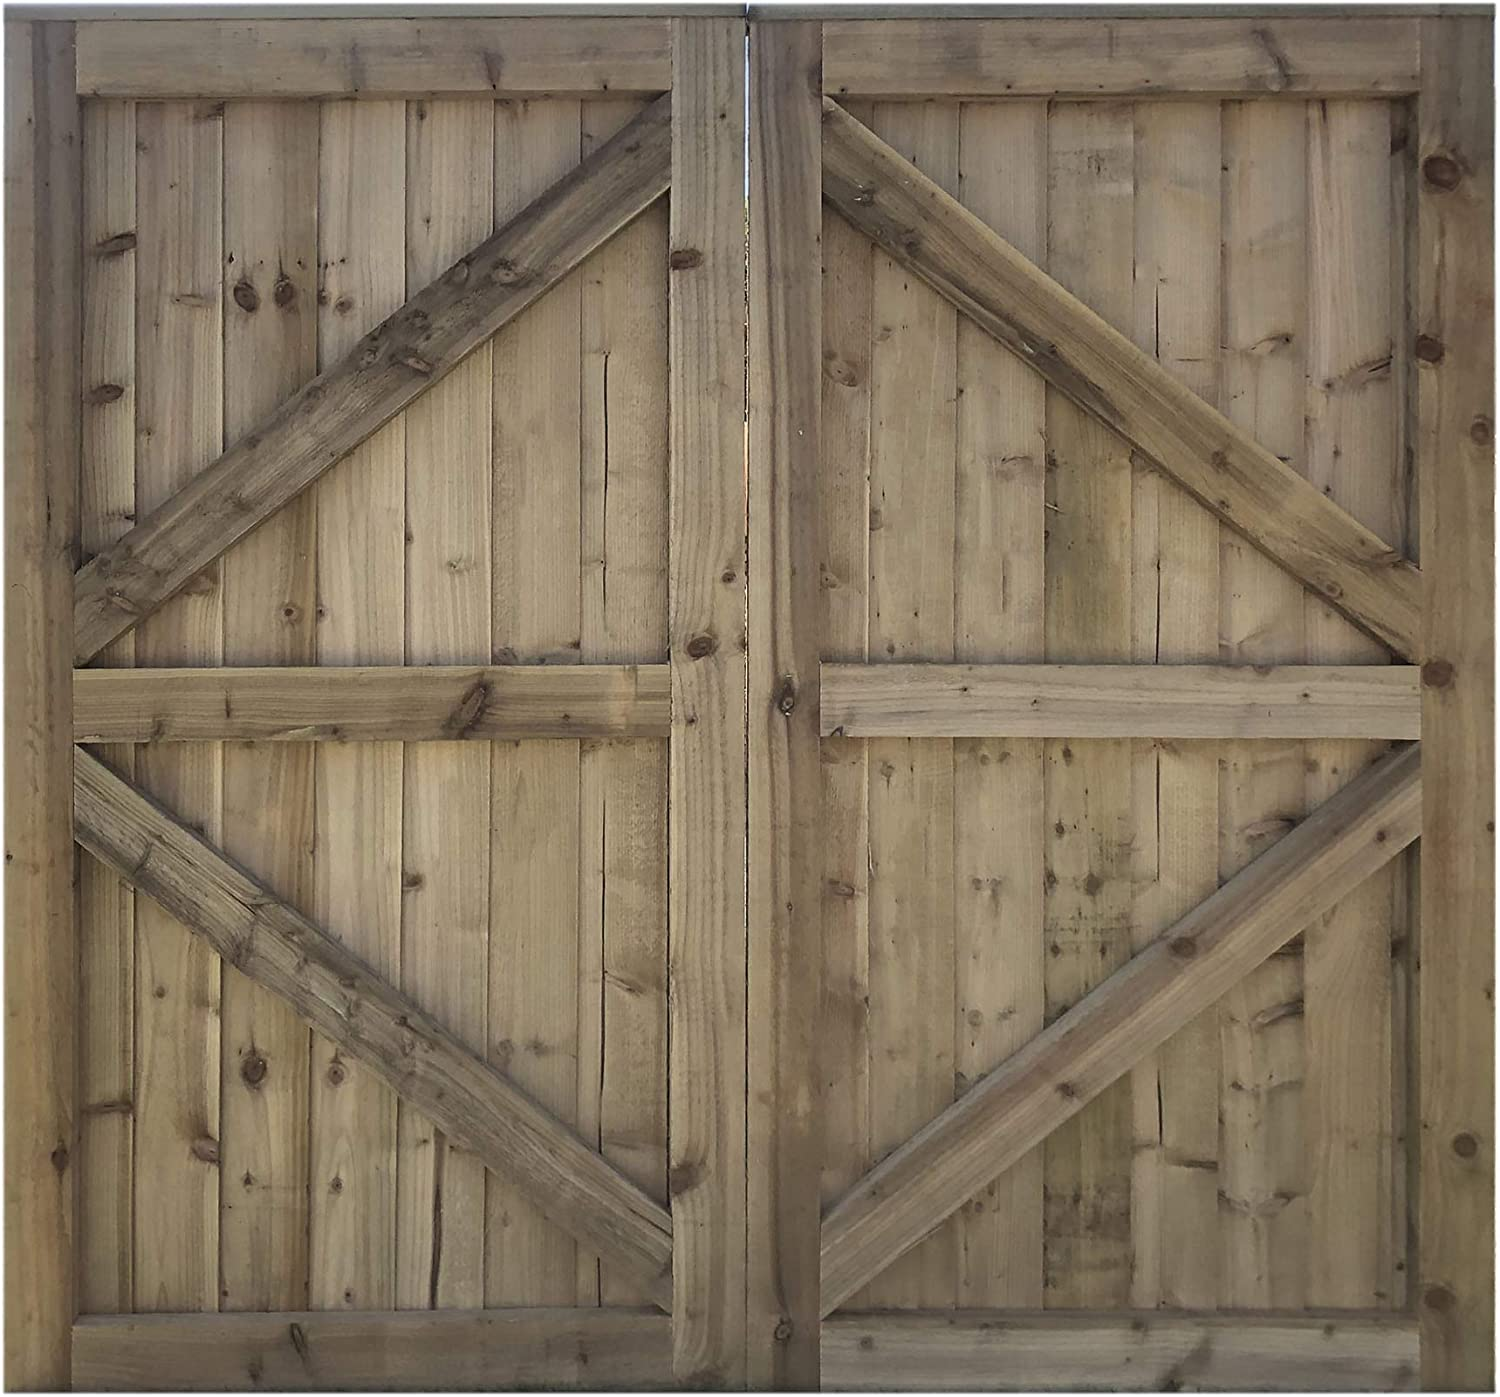 180cm x 90cm Feather Edge Fully Framed Strong Garden Gate Driveway Fence Wood Timber 180cm Tall x 90cm Wide, with Ring Latch Hinge Pack